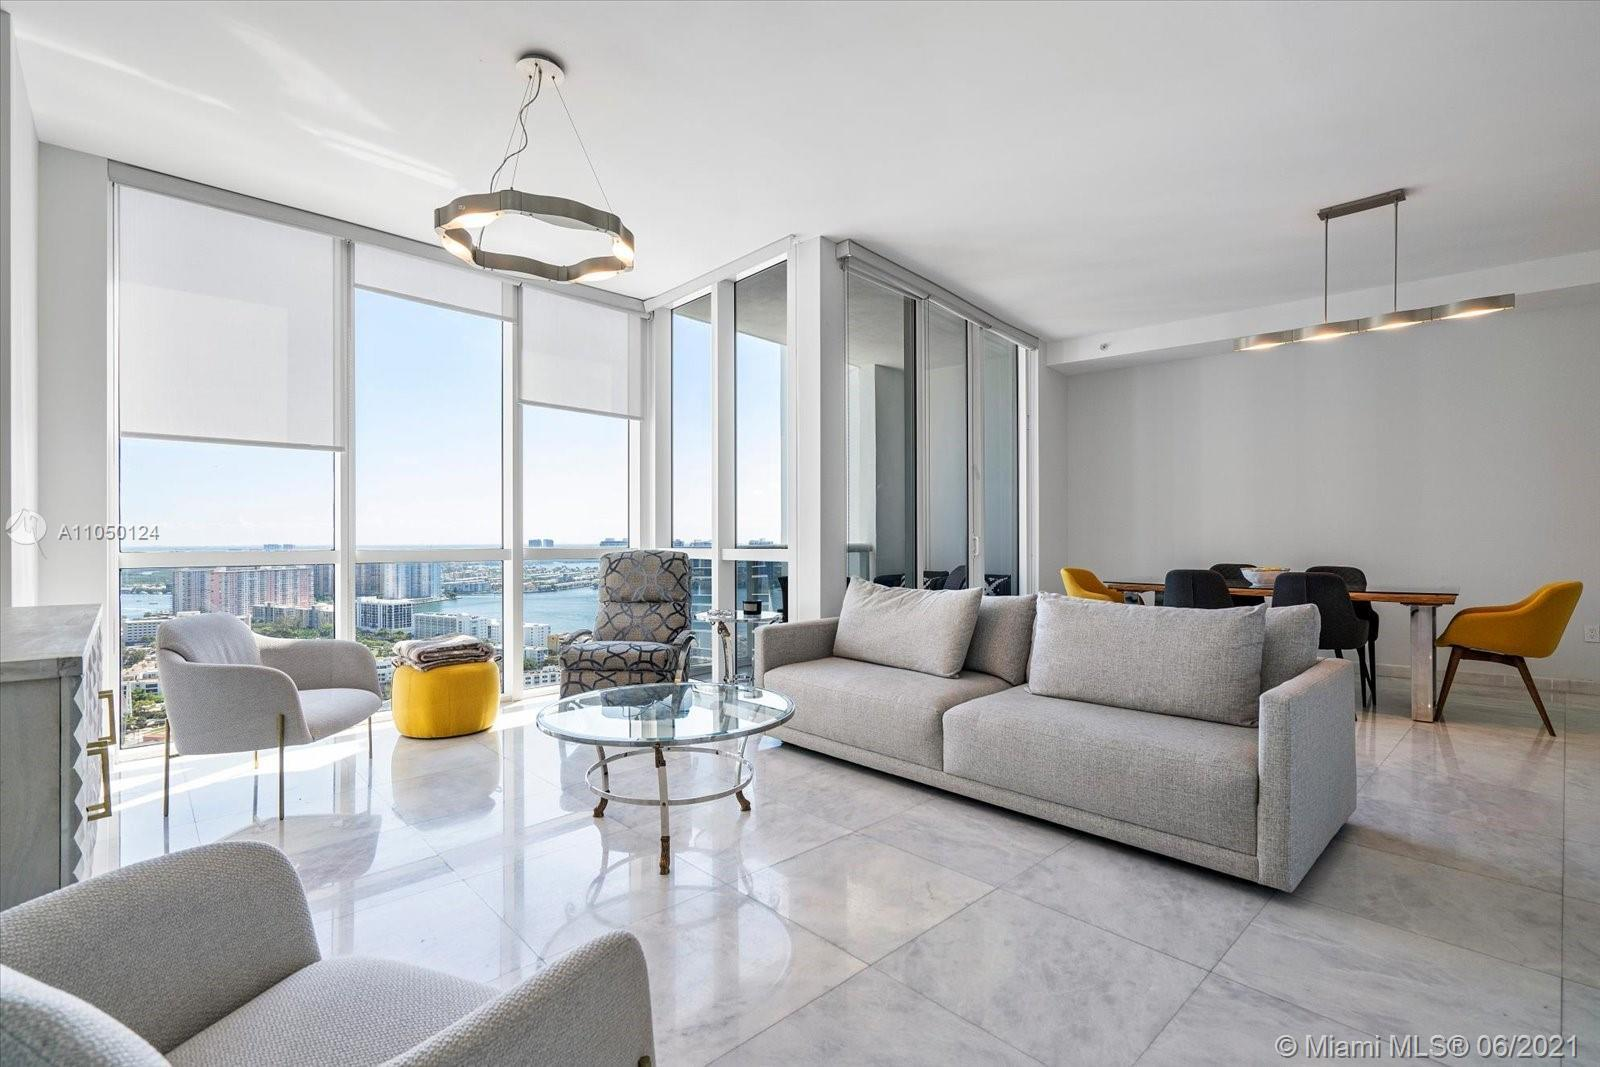 Lots of floor to ceiling windows and natural light from this wide floorplan featuring two bedrooms,